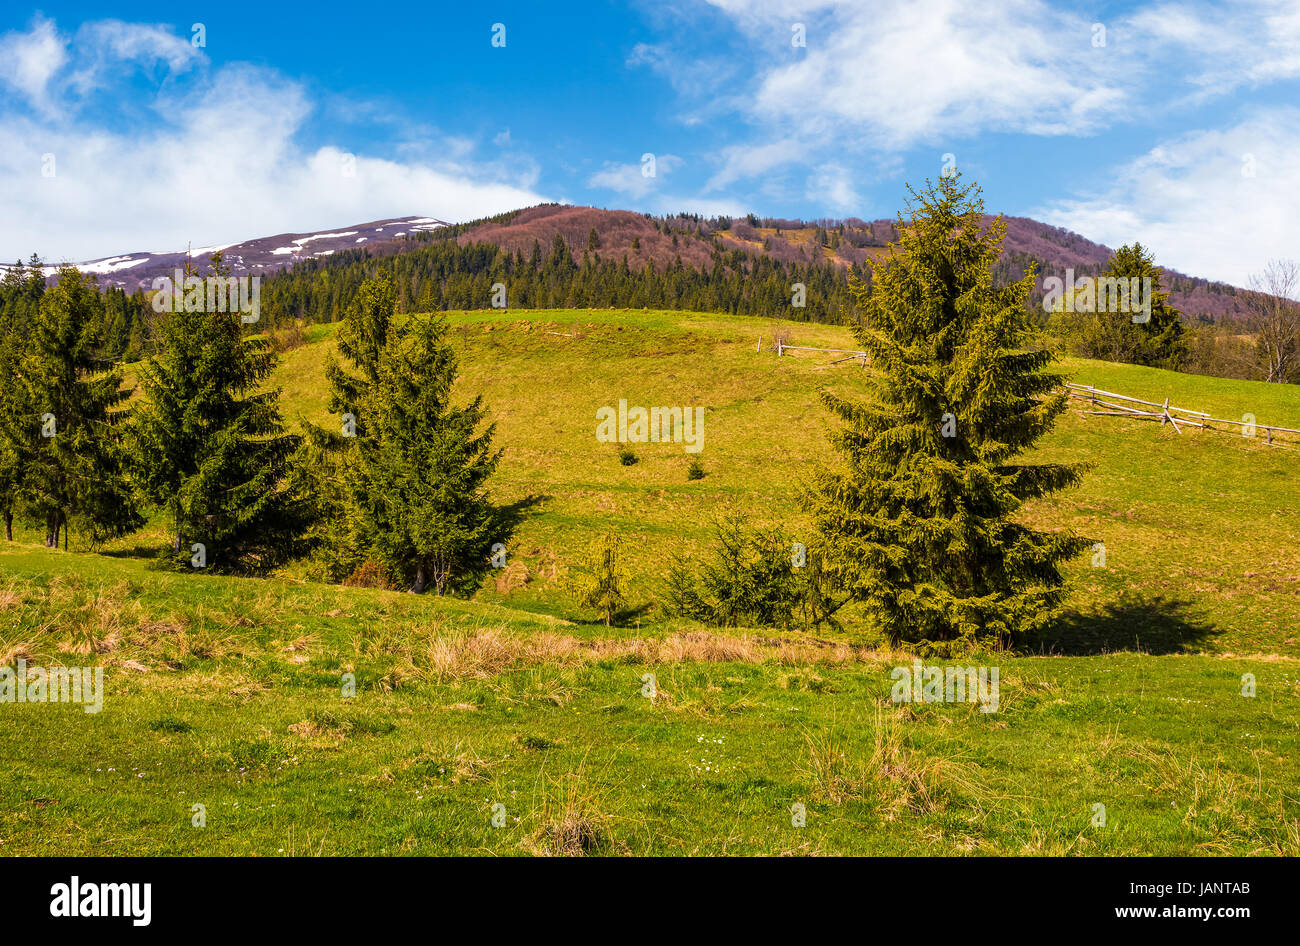 Conifer forest at the foot of the mountain on a bright sunny day. blue sky with clouds in summer countryside landscape - Stock Image